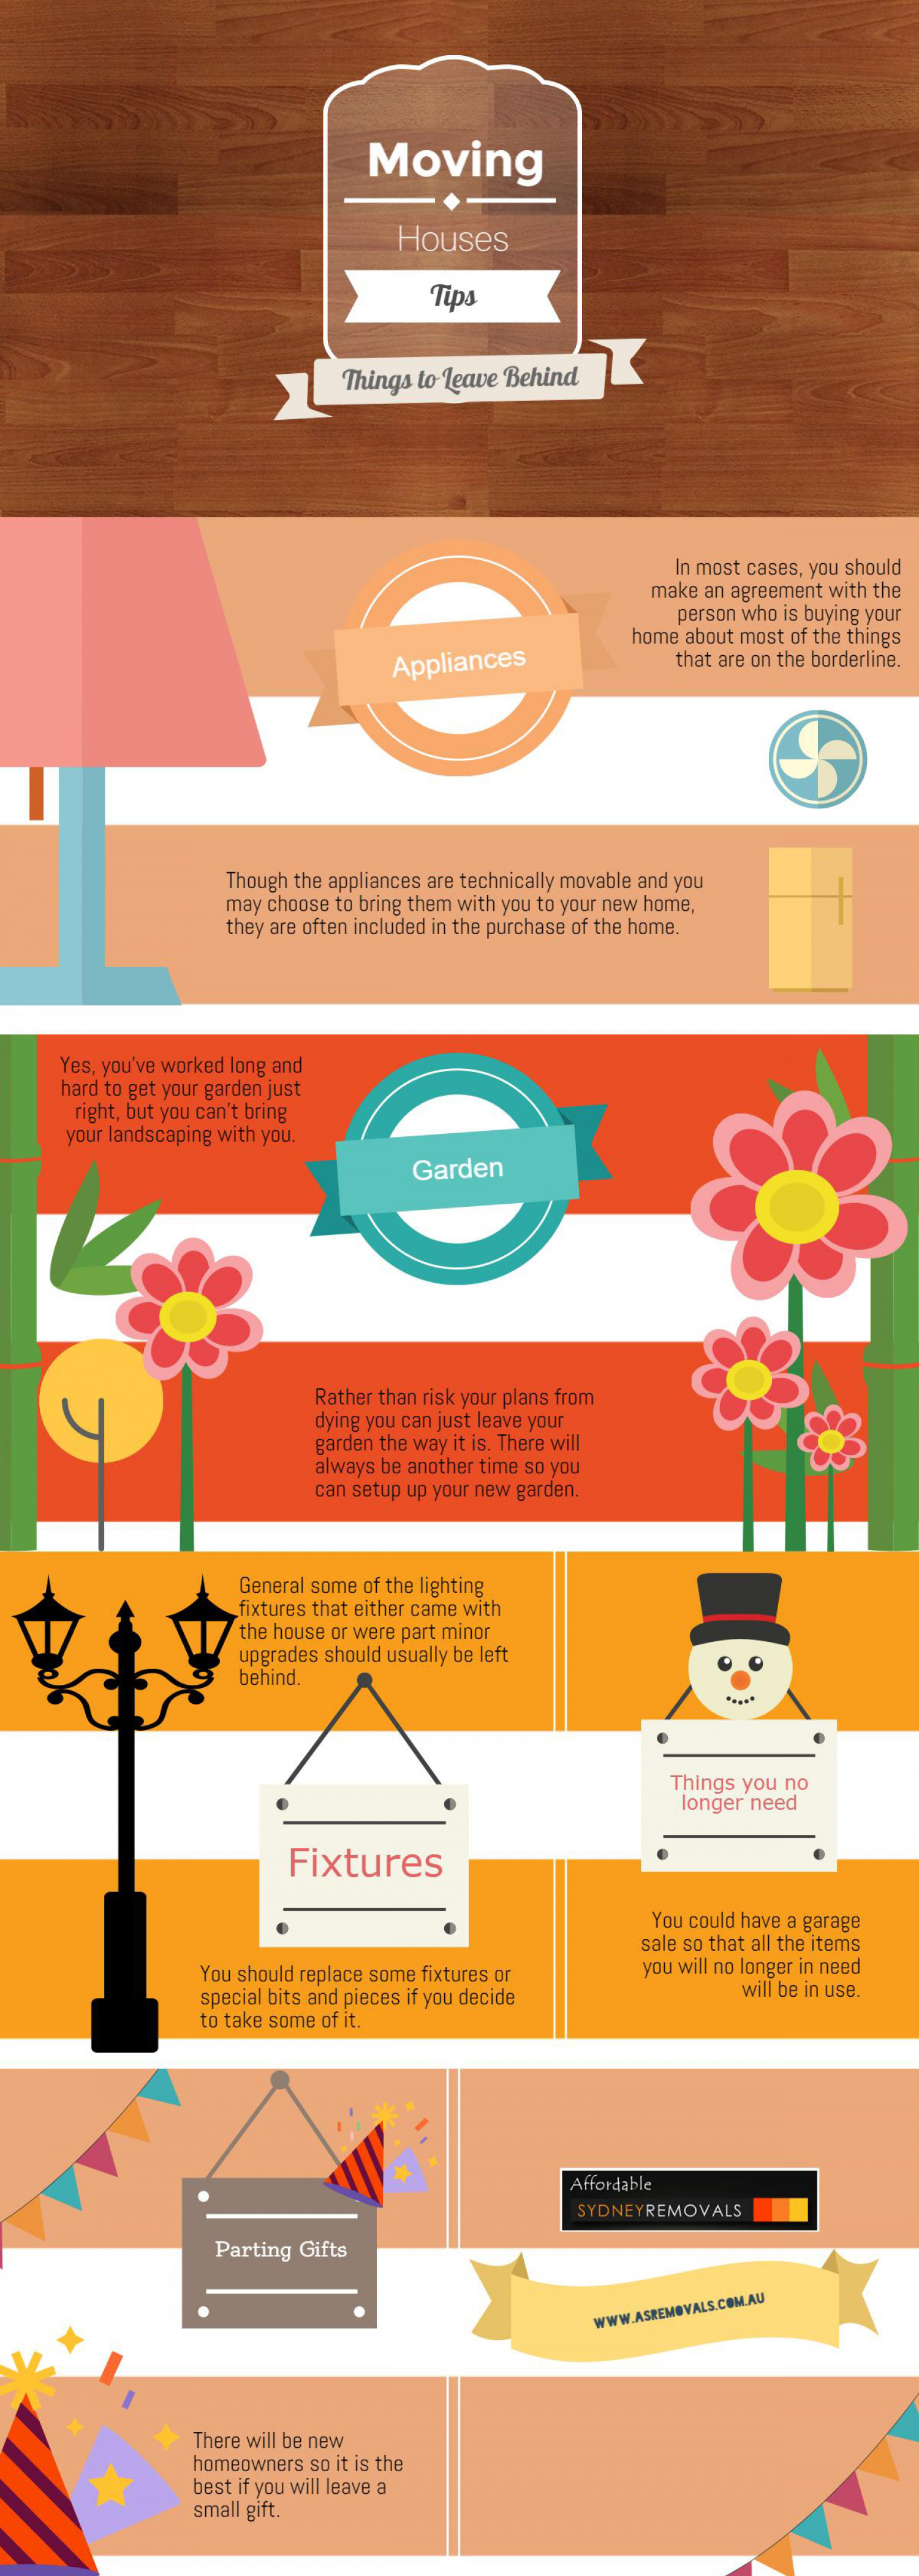 Moving Houses Tips: Things to Leave Behind | Visual.ly